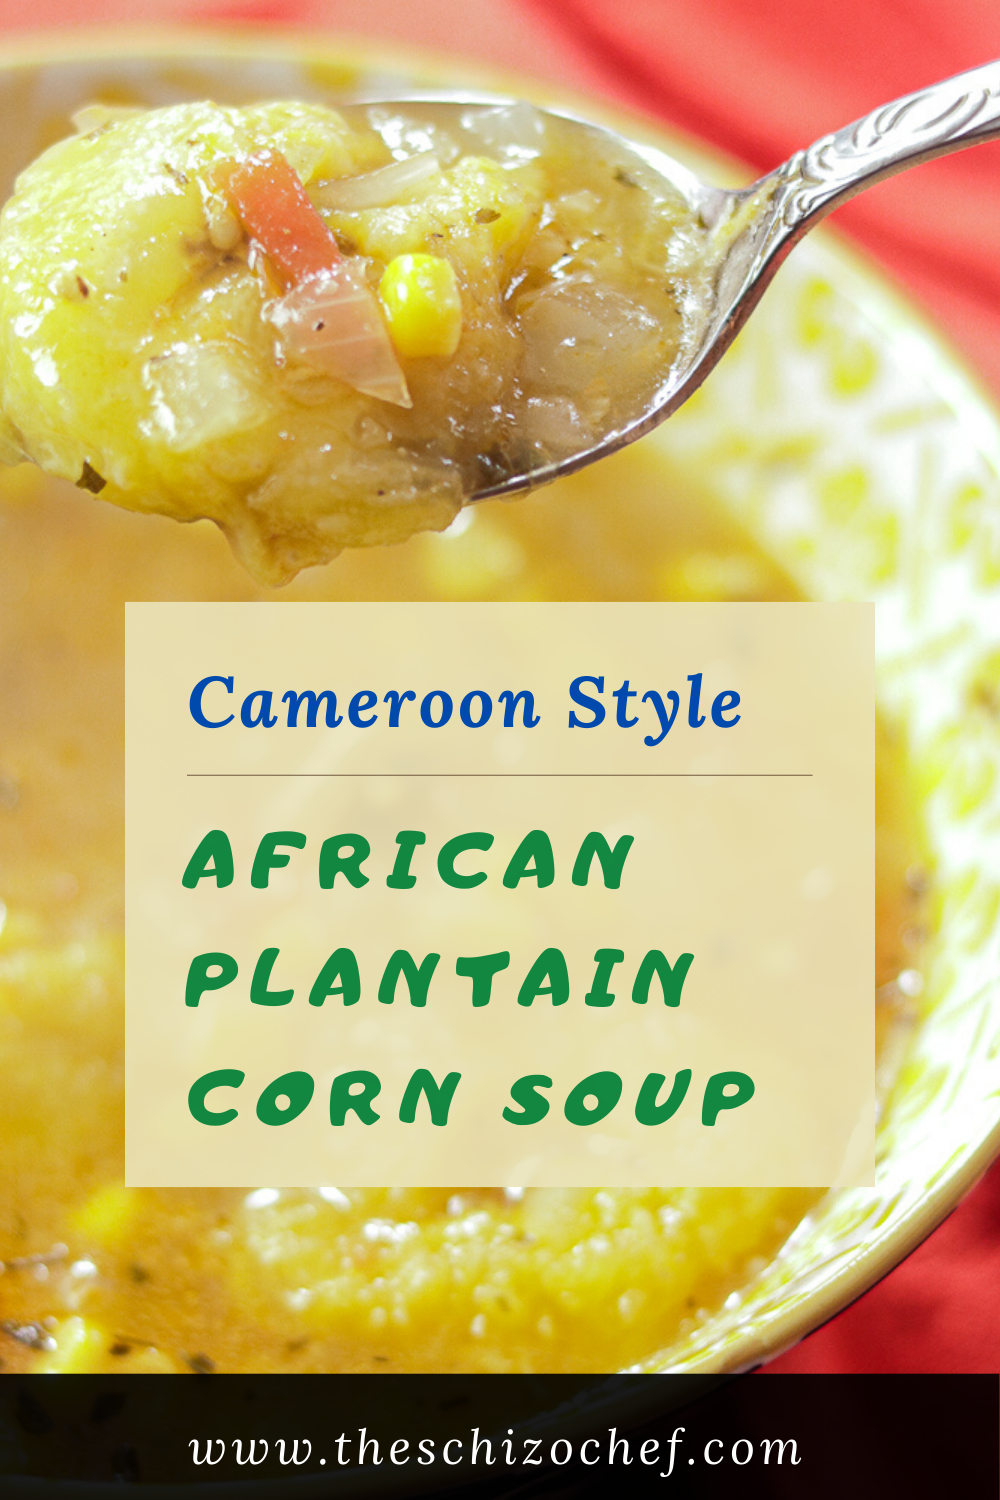 bowl of African Plantain Corn Soup with text